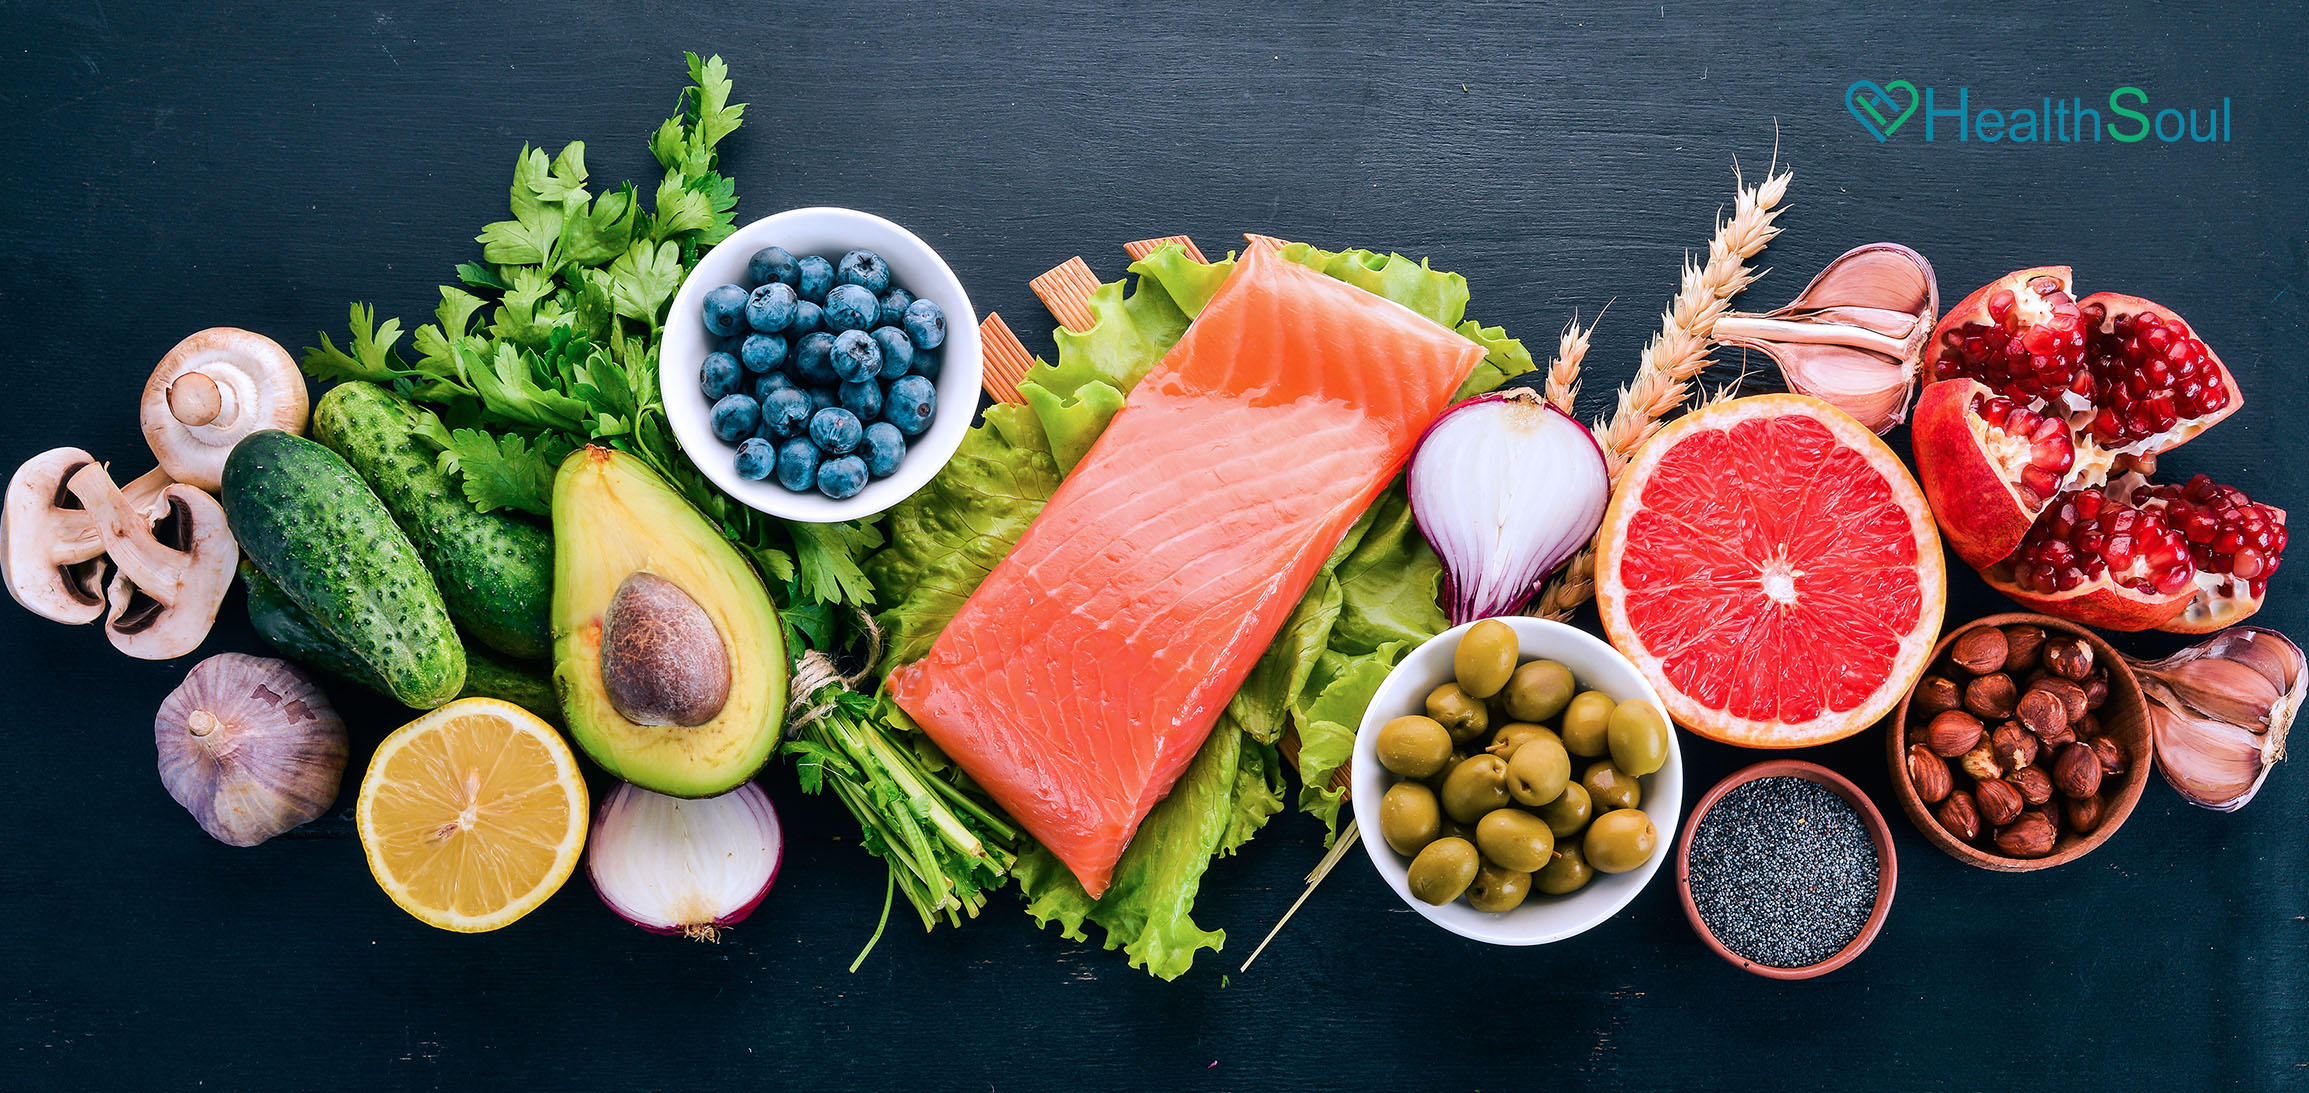 Keto Diet Dos and Don'ts   HealthSoul